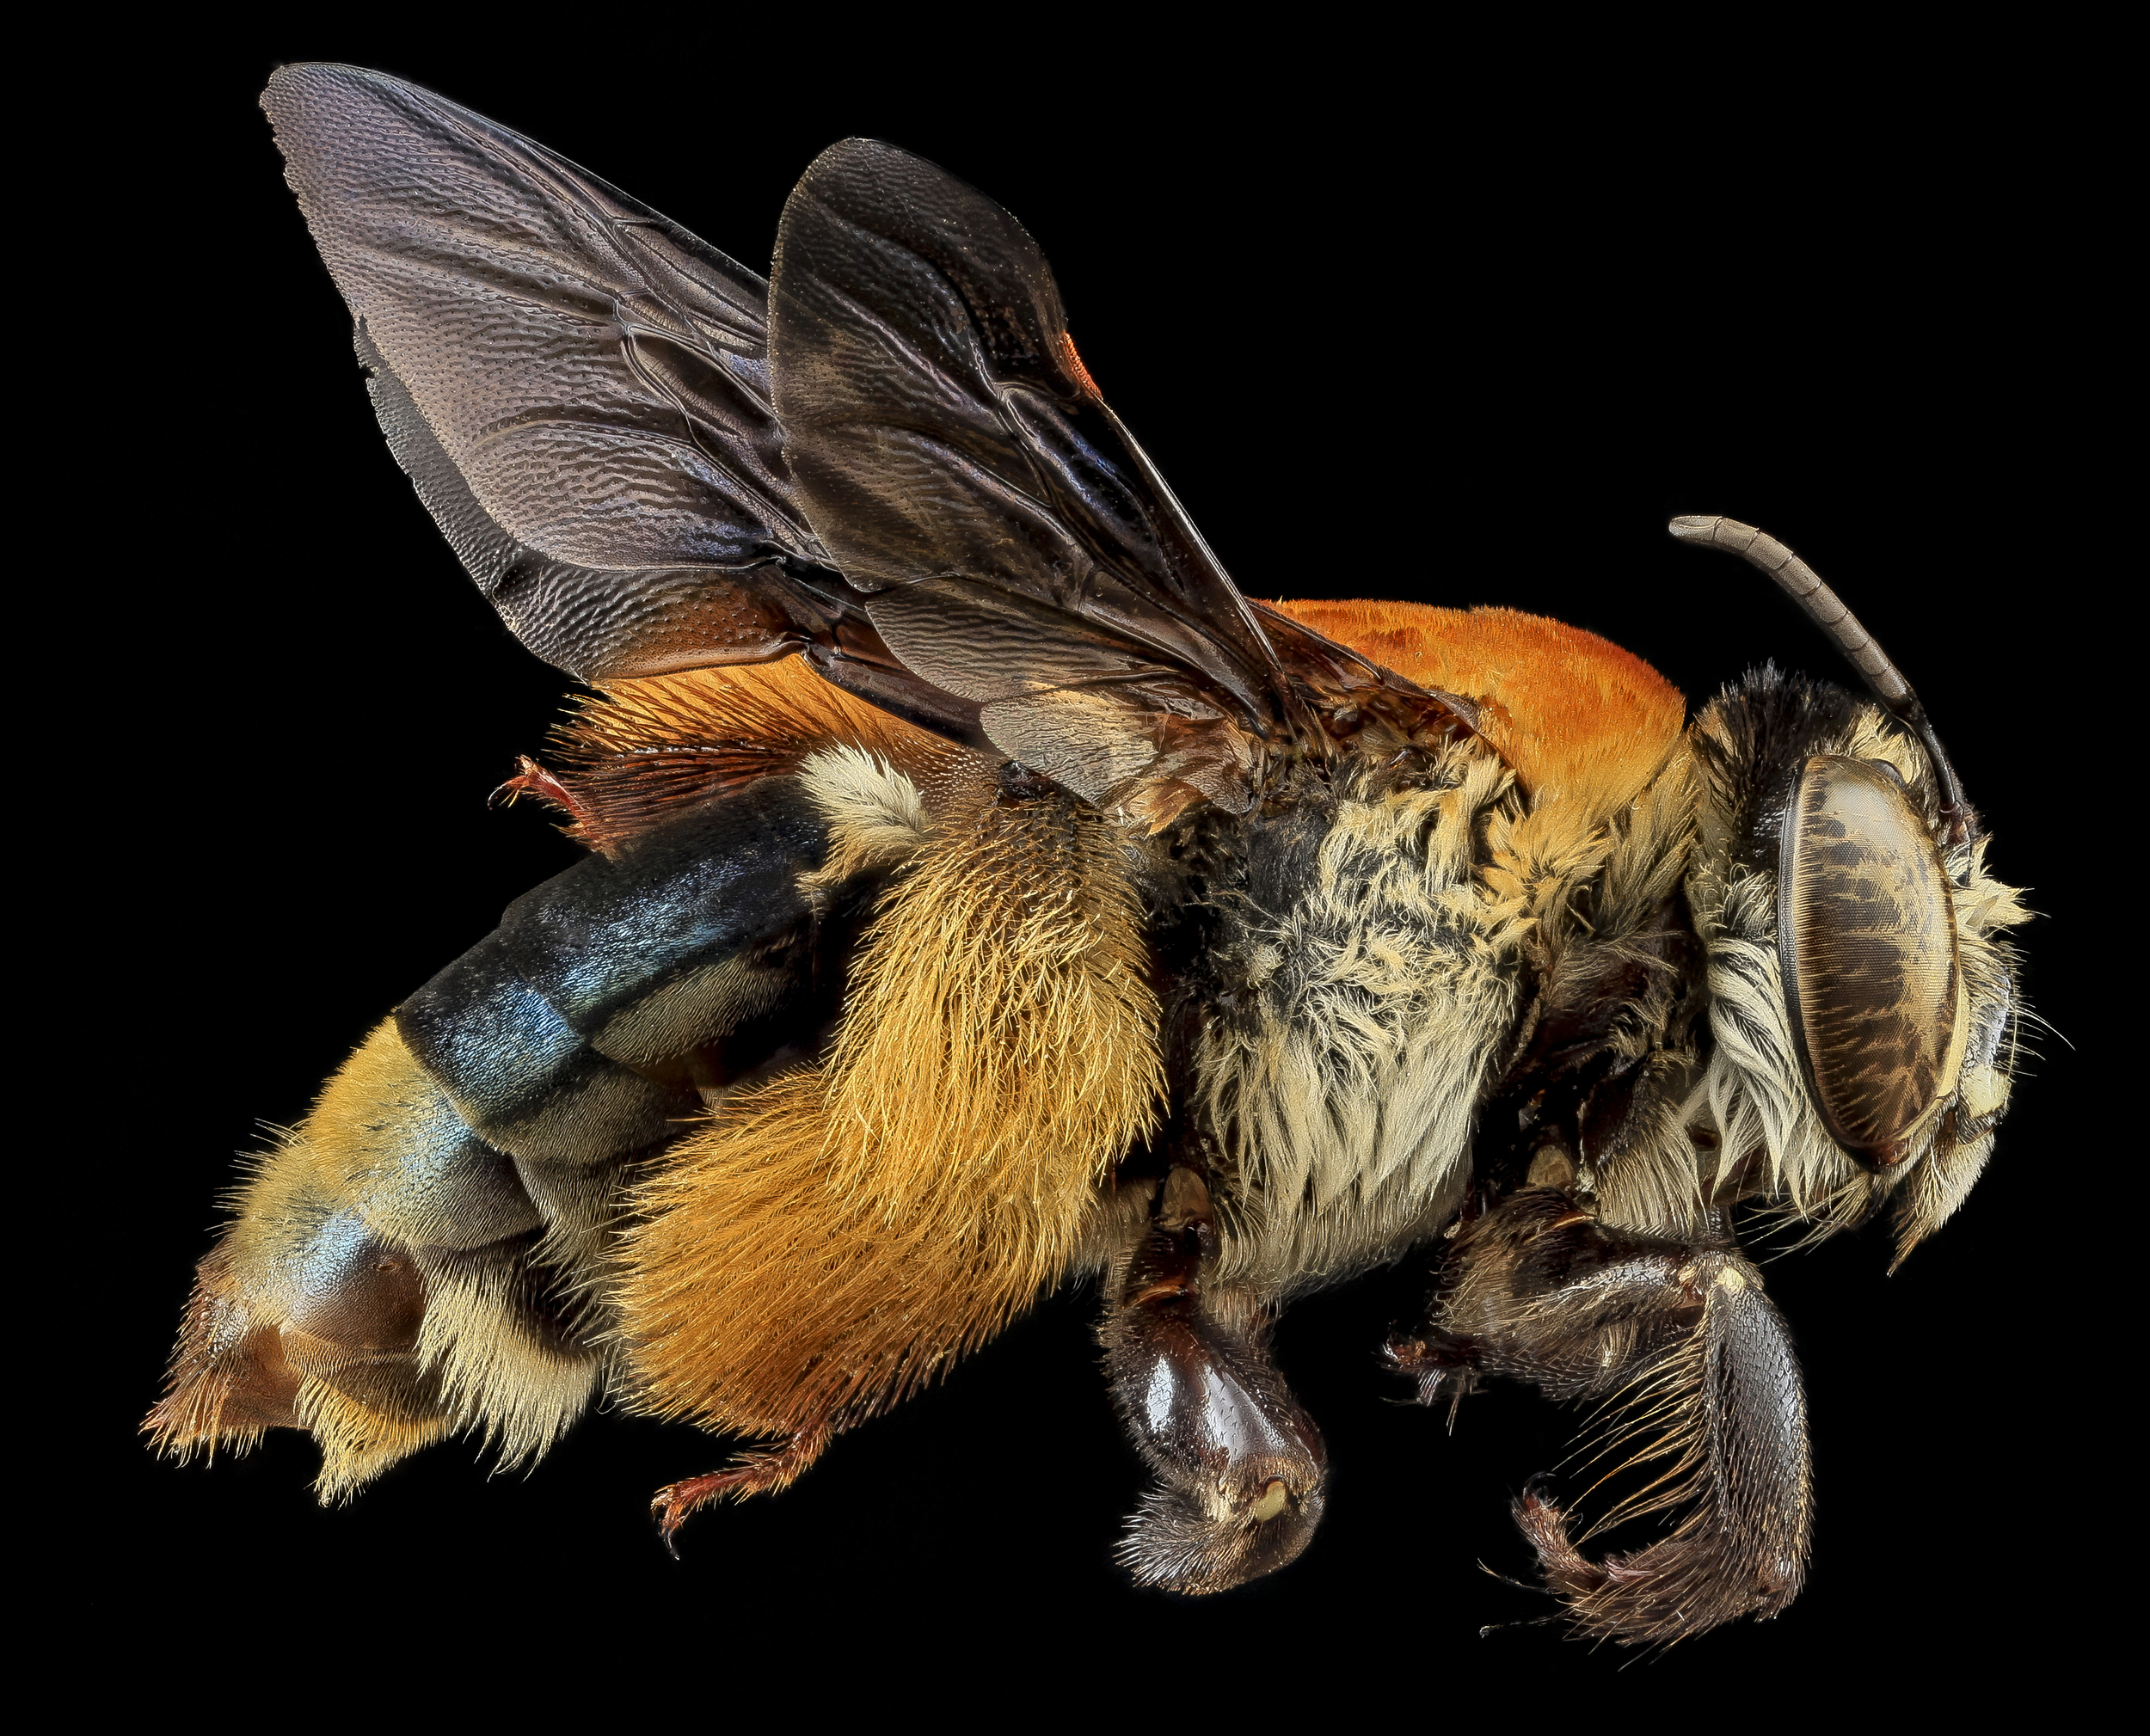 Centris   decolorata    USGS Bee Inventory and Monitoring Lab/Wikimedia Commons  [ CC BY 2.0]